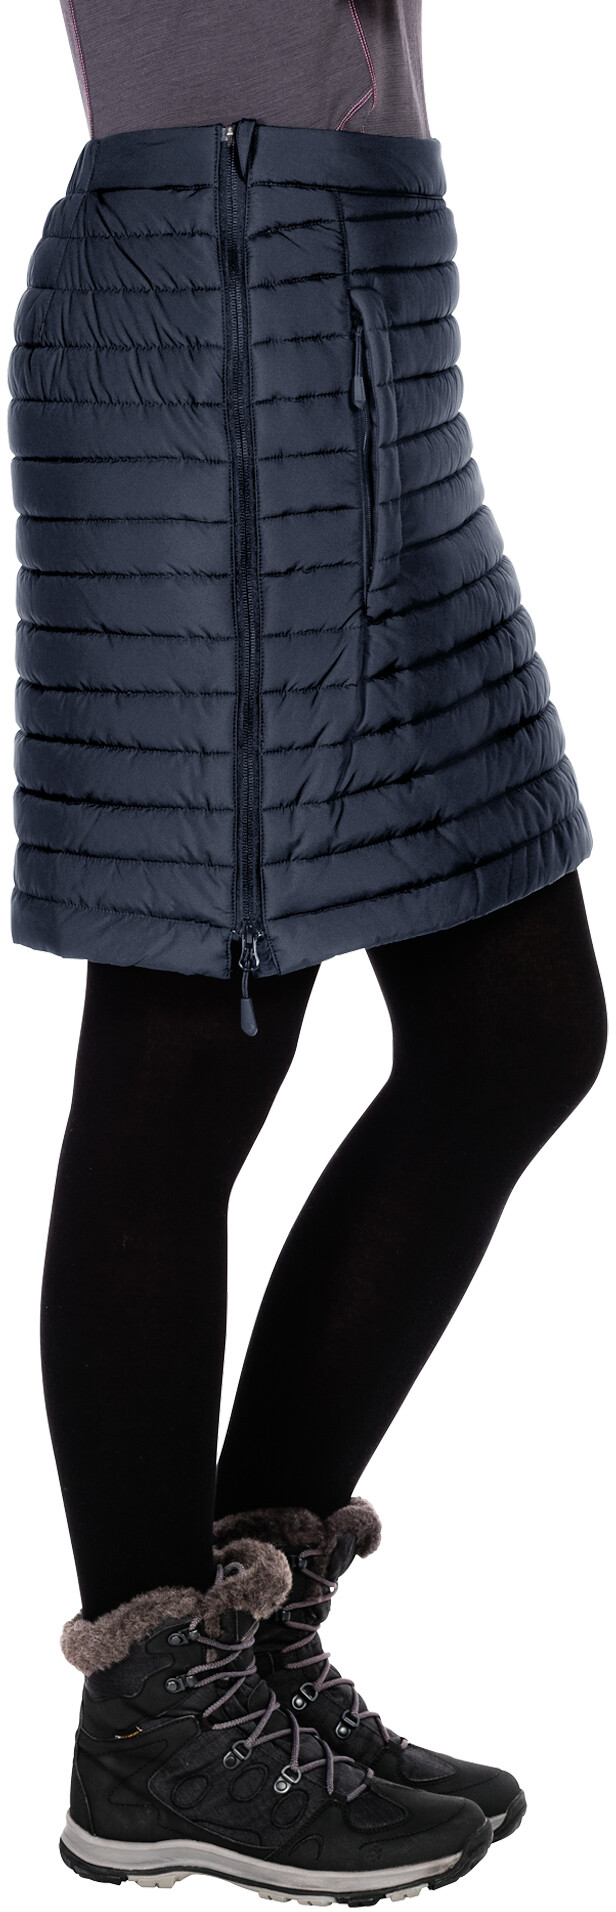 Jack Wolfskin Iceguard Skirt Women Blue At Addnature Co Uk